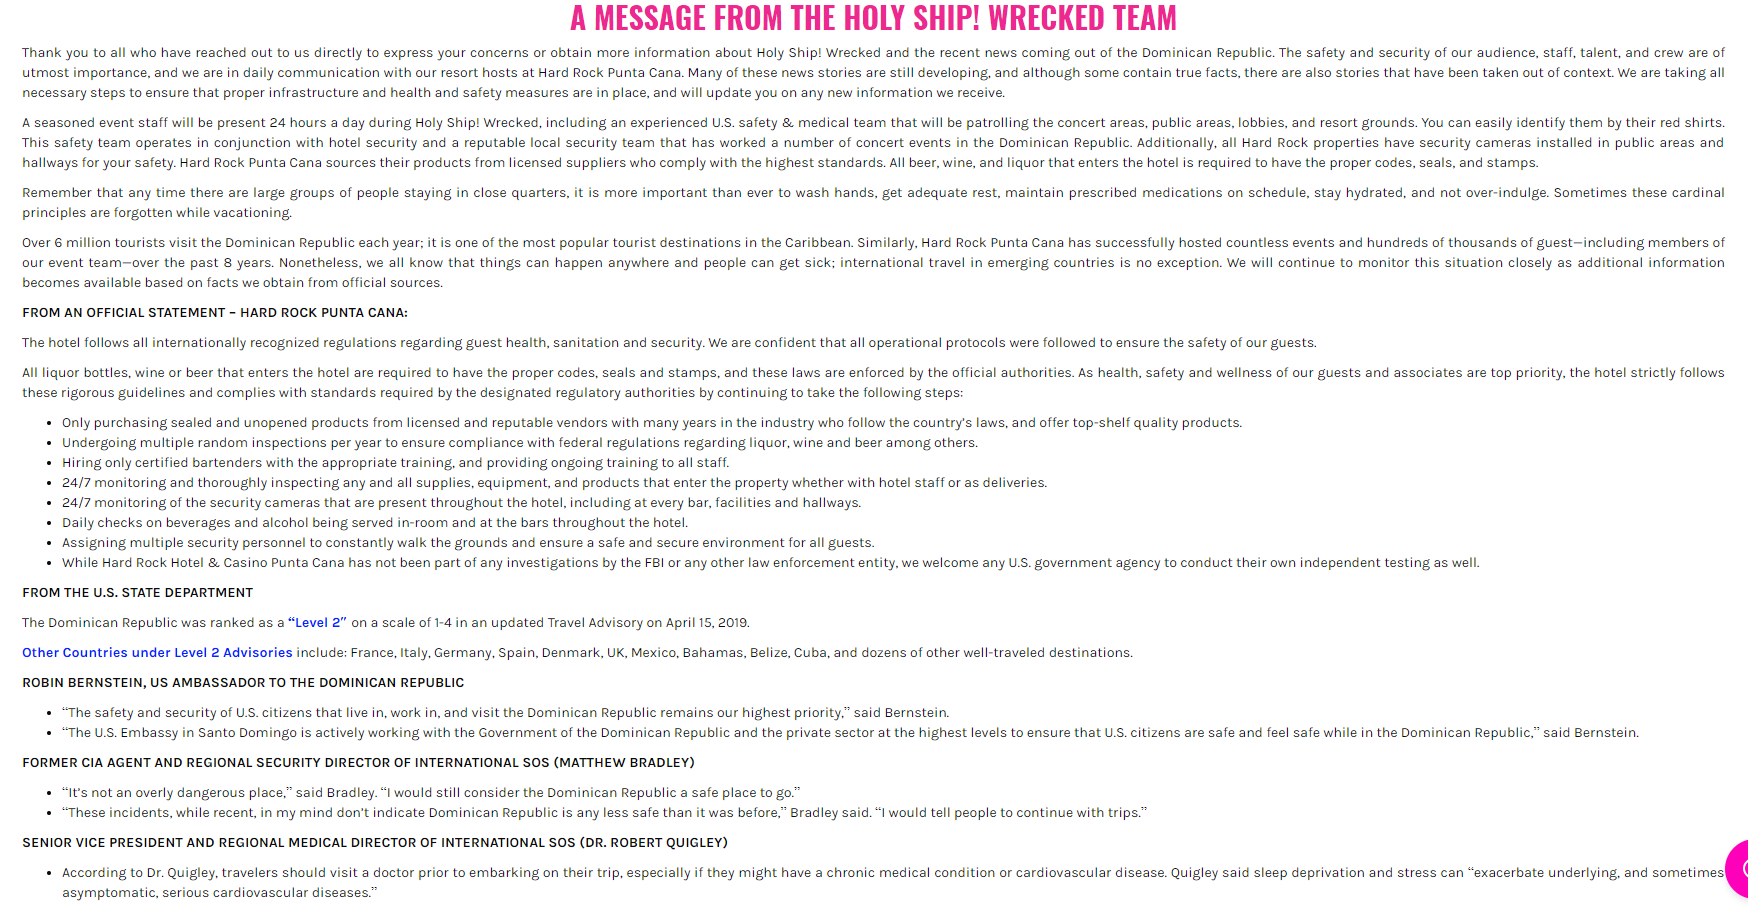 Holy Ship Wrecked Statement